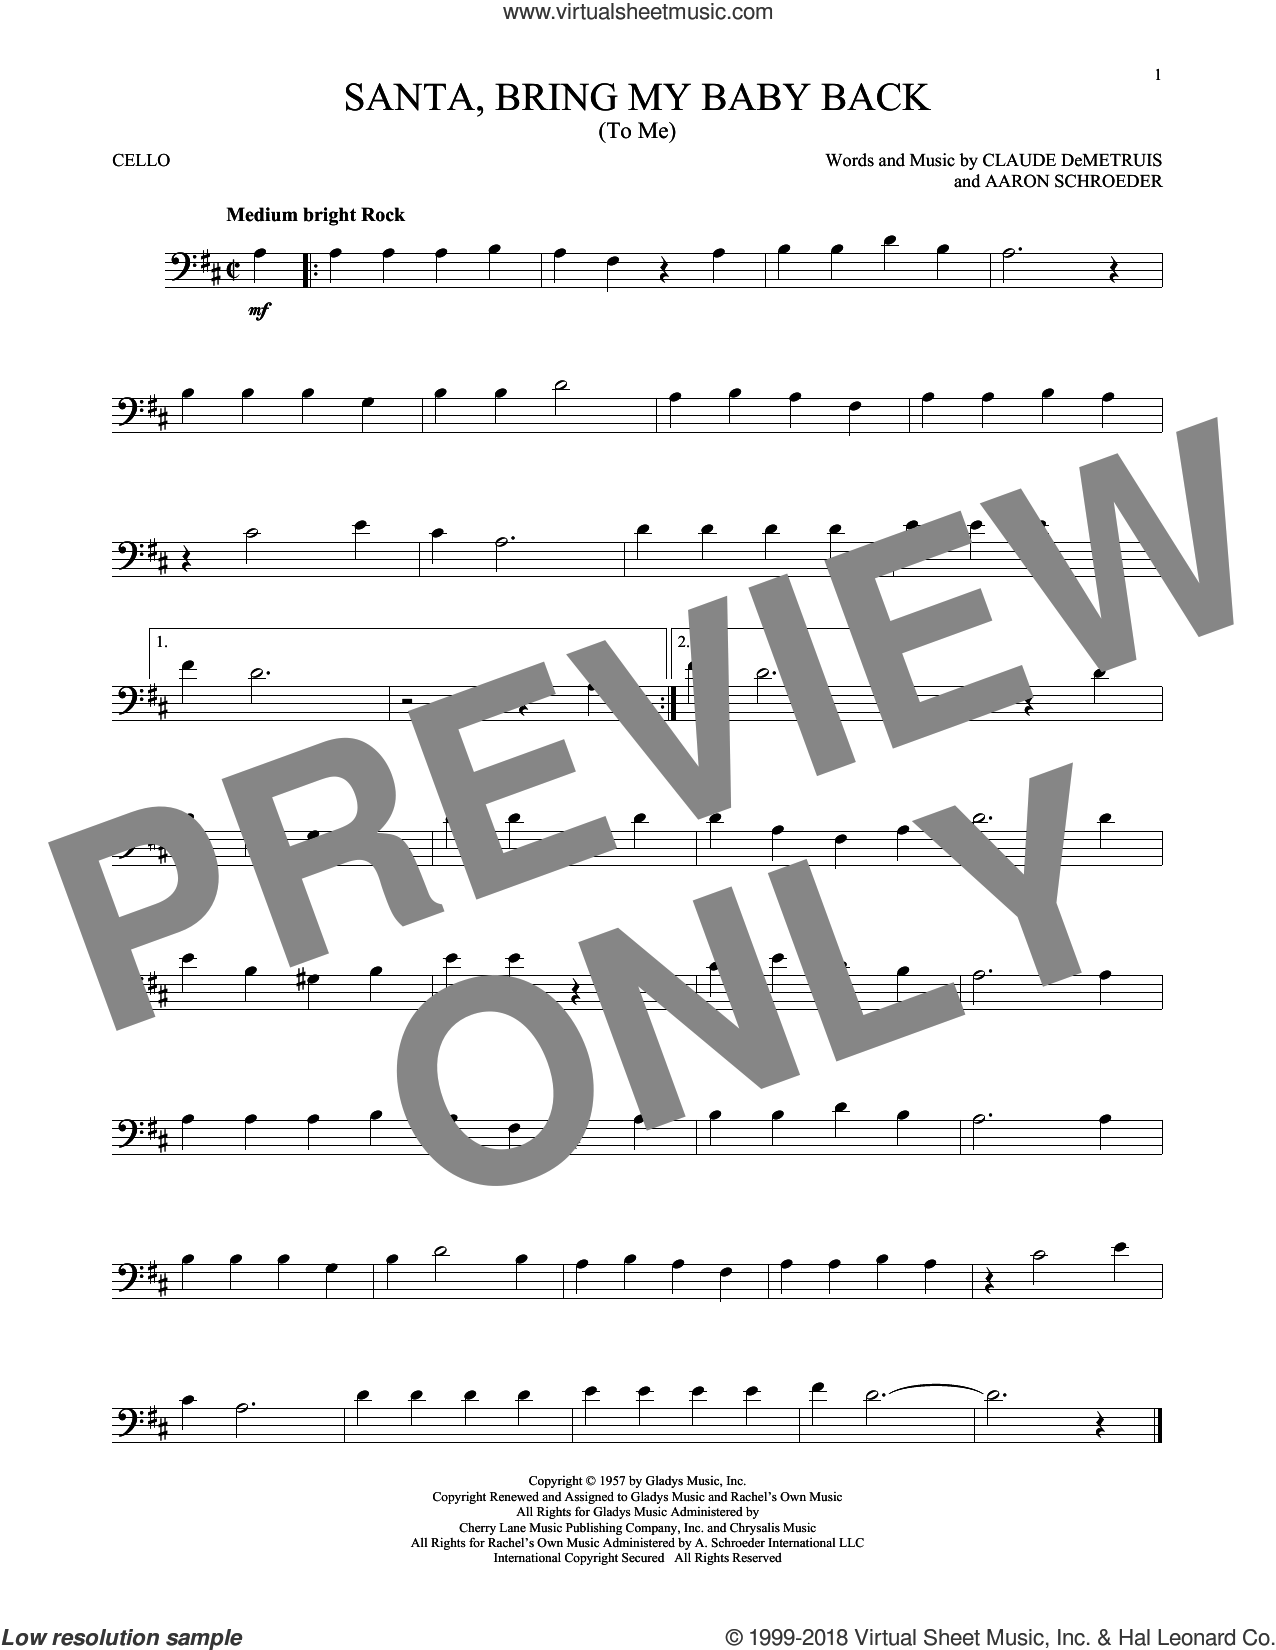 Santa, Bring My Baby Back (To Me) sheet music for cello solo by Elvis Presley, Aaron Schroeder and Claude DeMetruis, intermediate